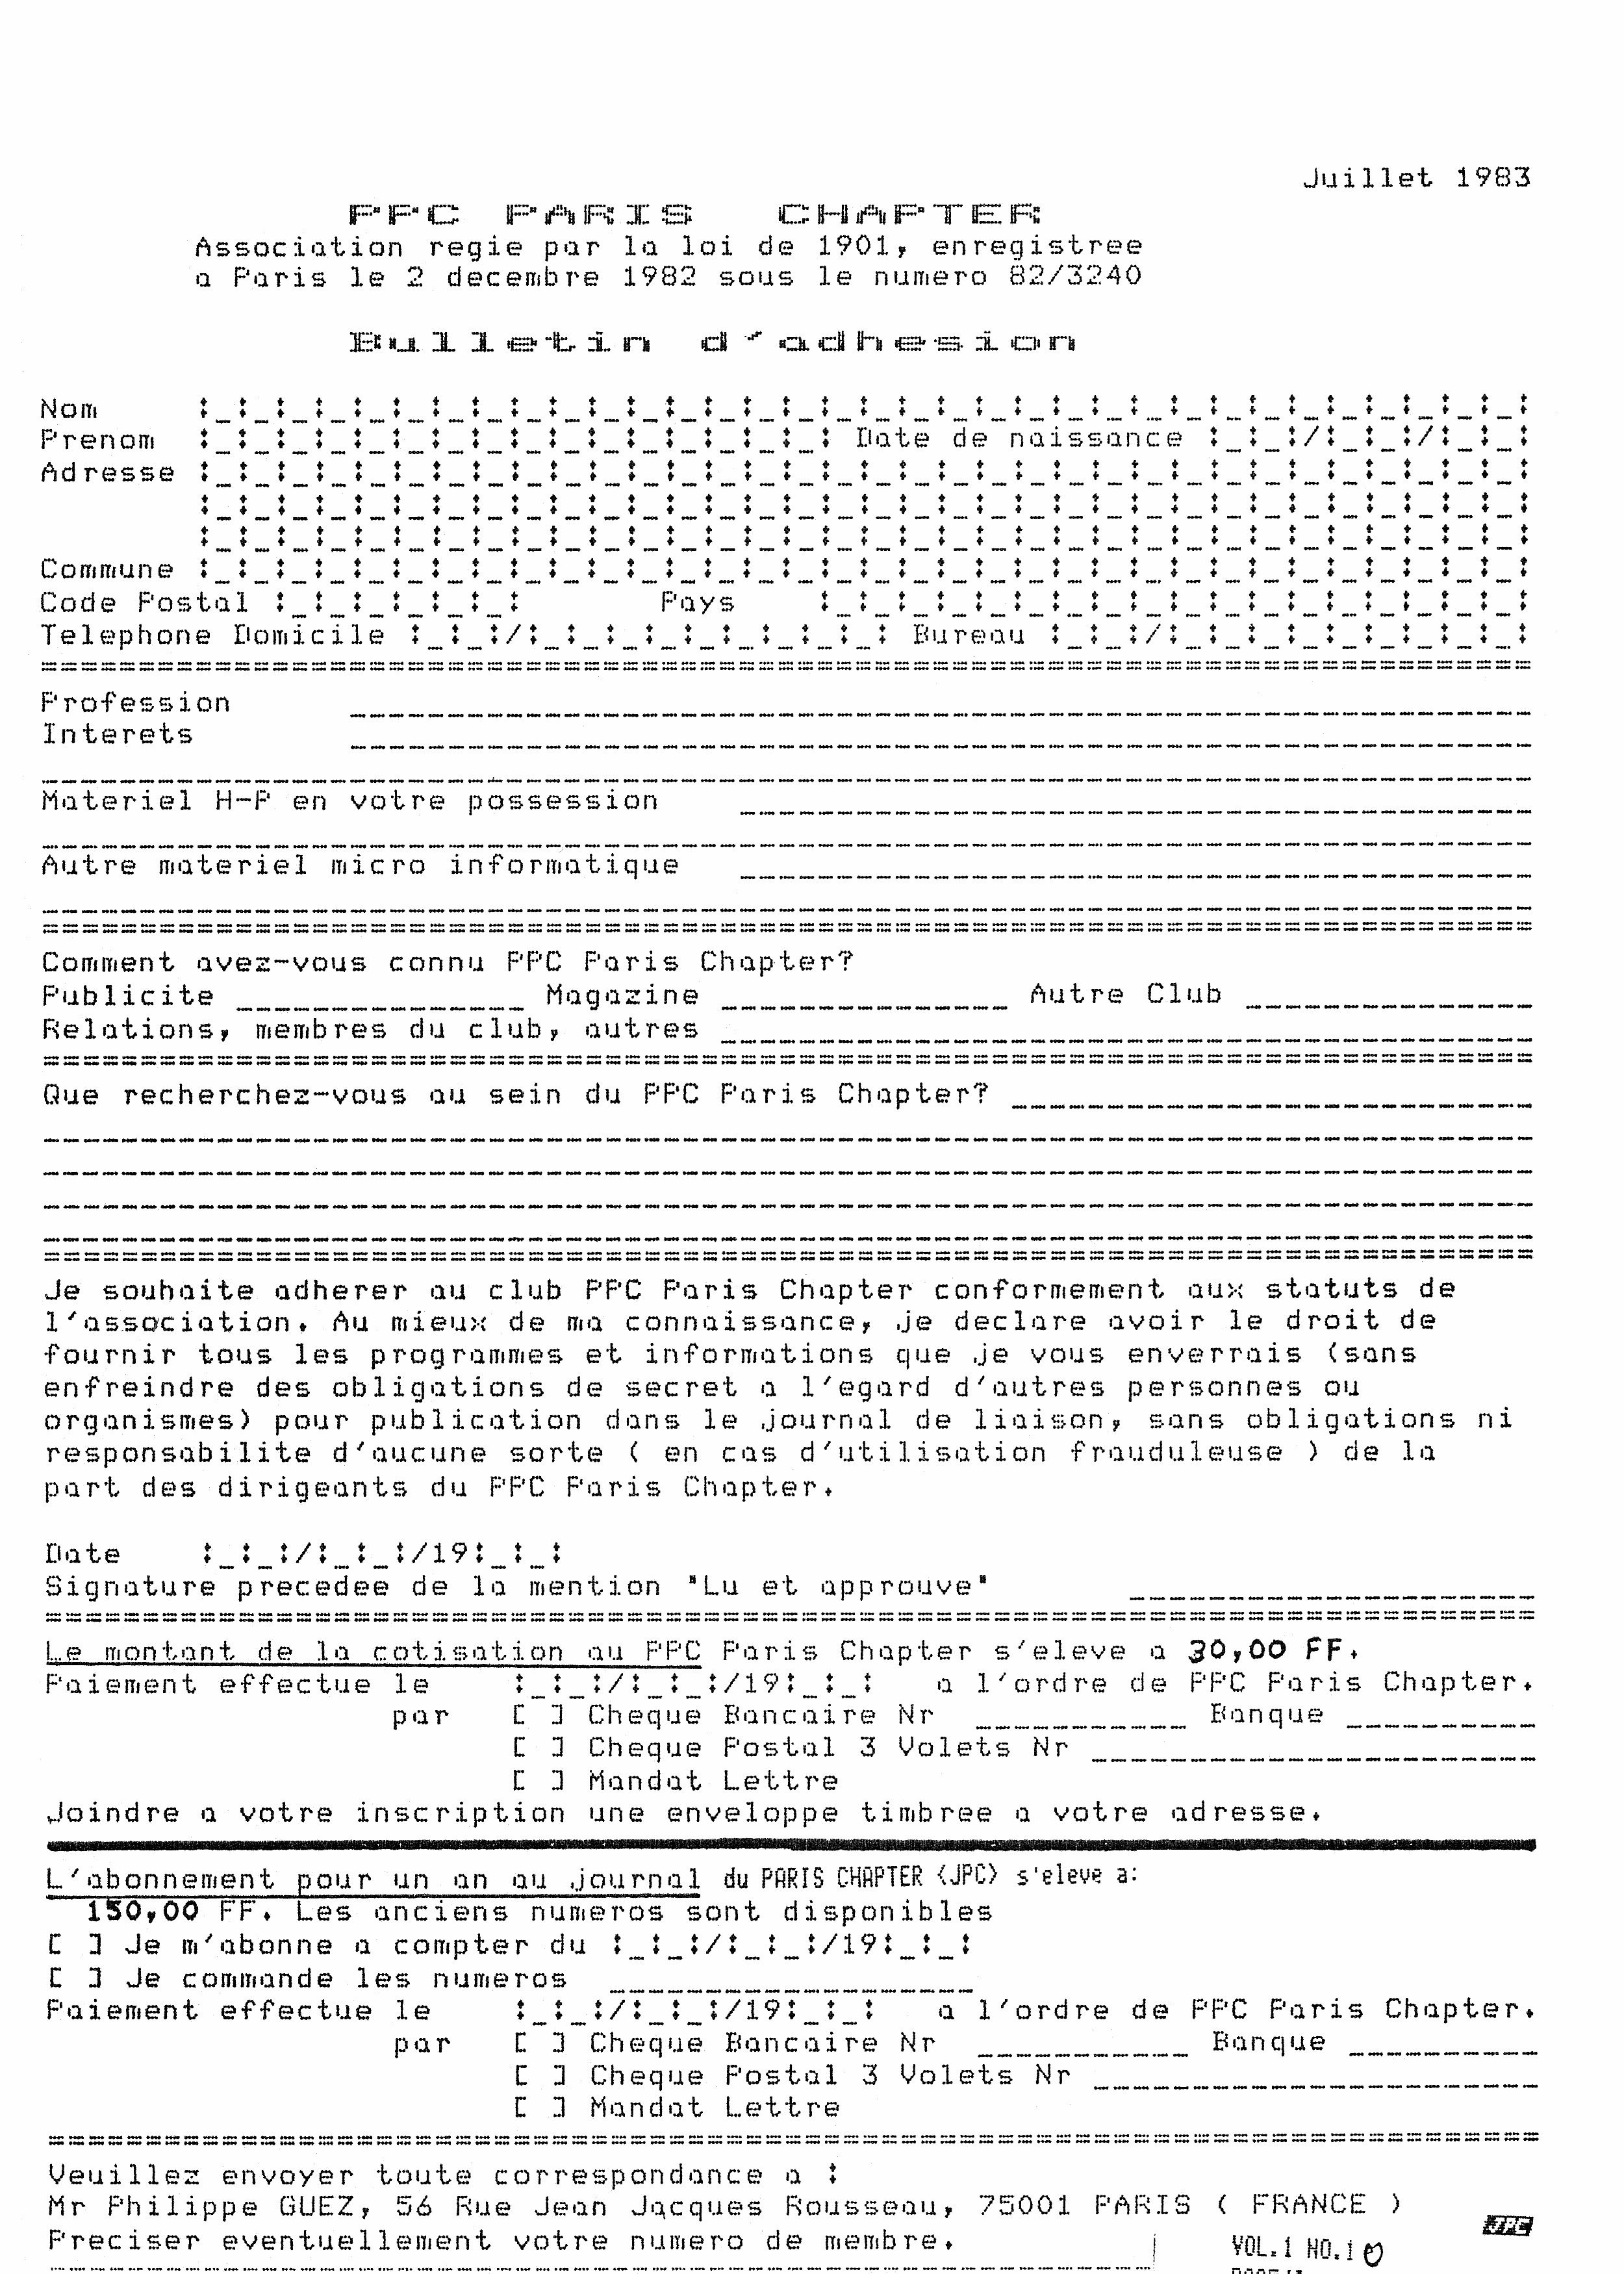 Jp-10-page-40-1000